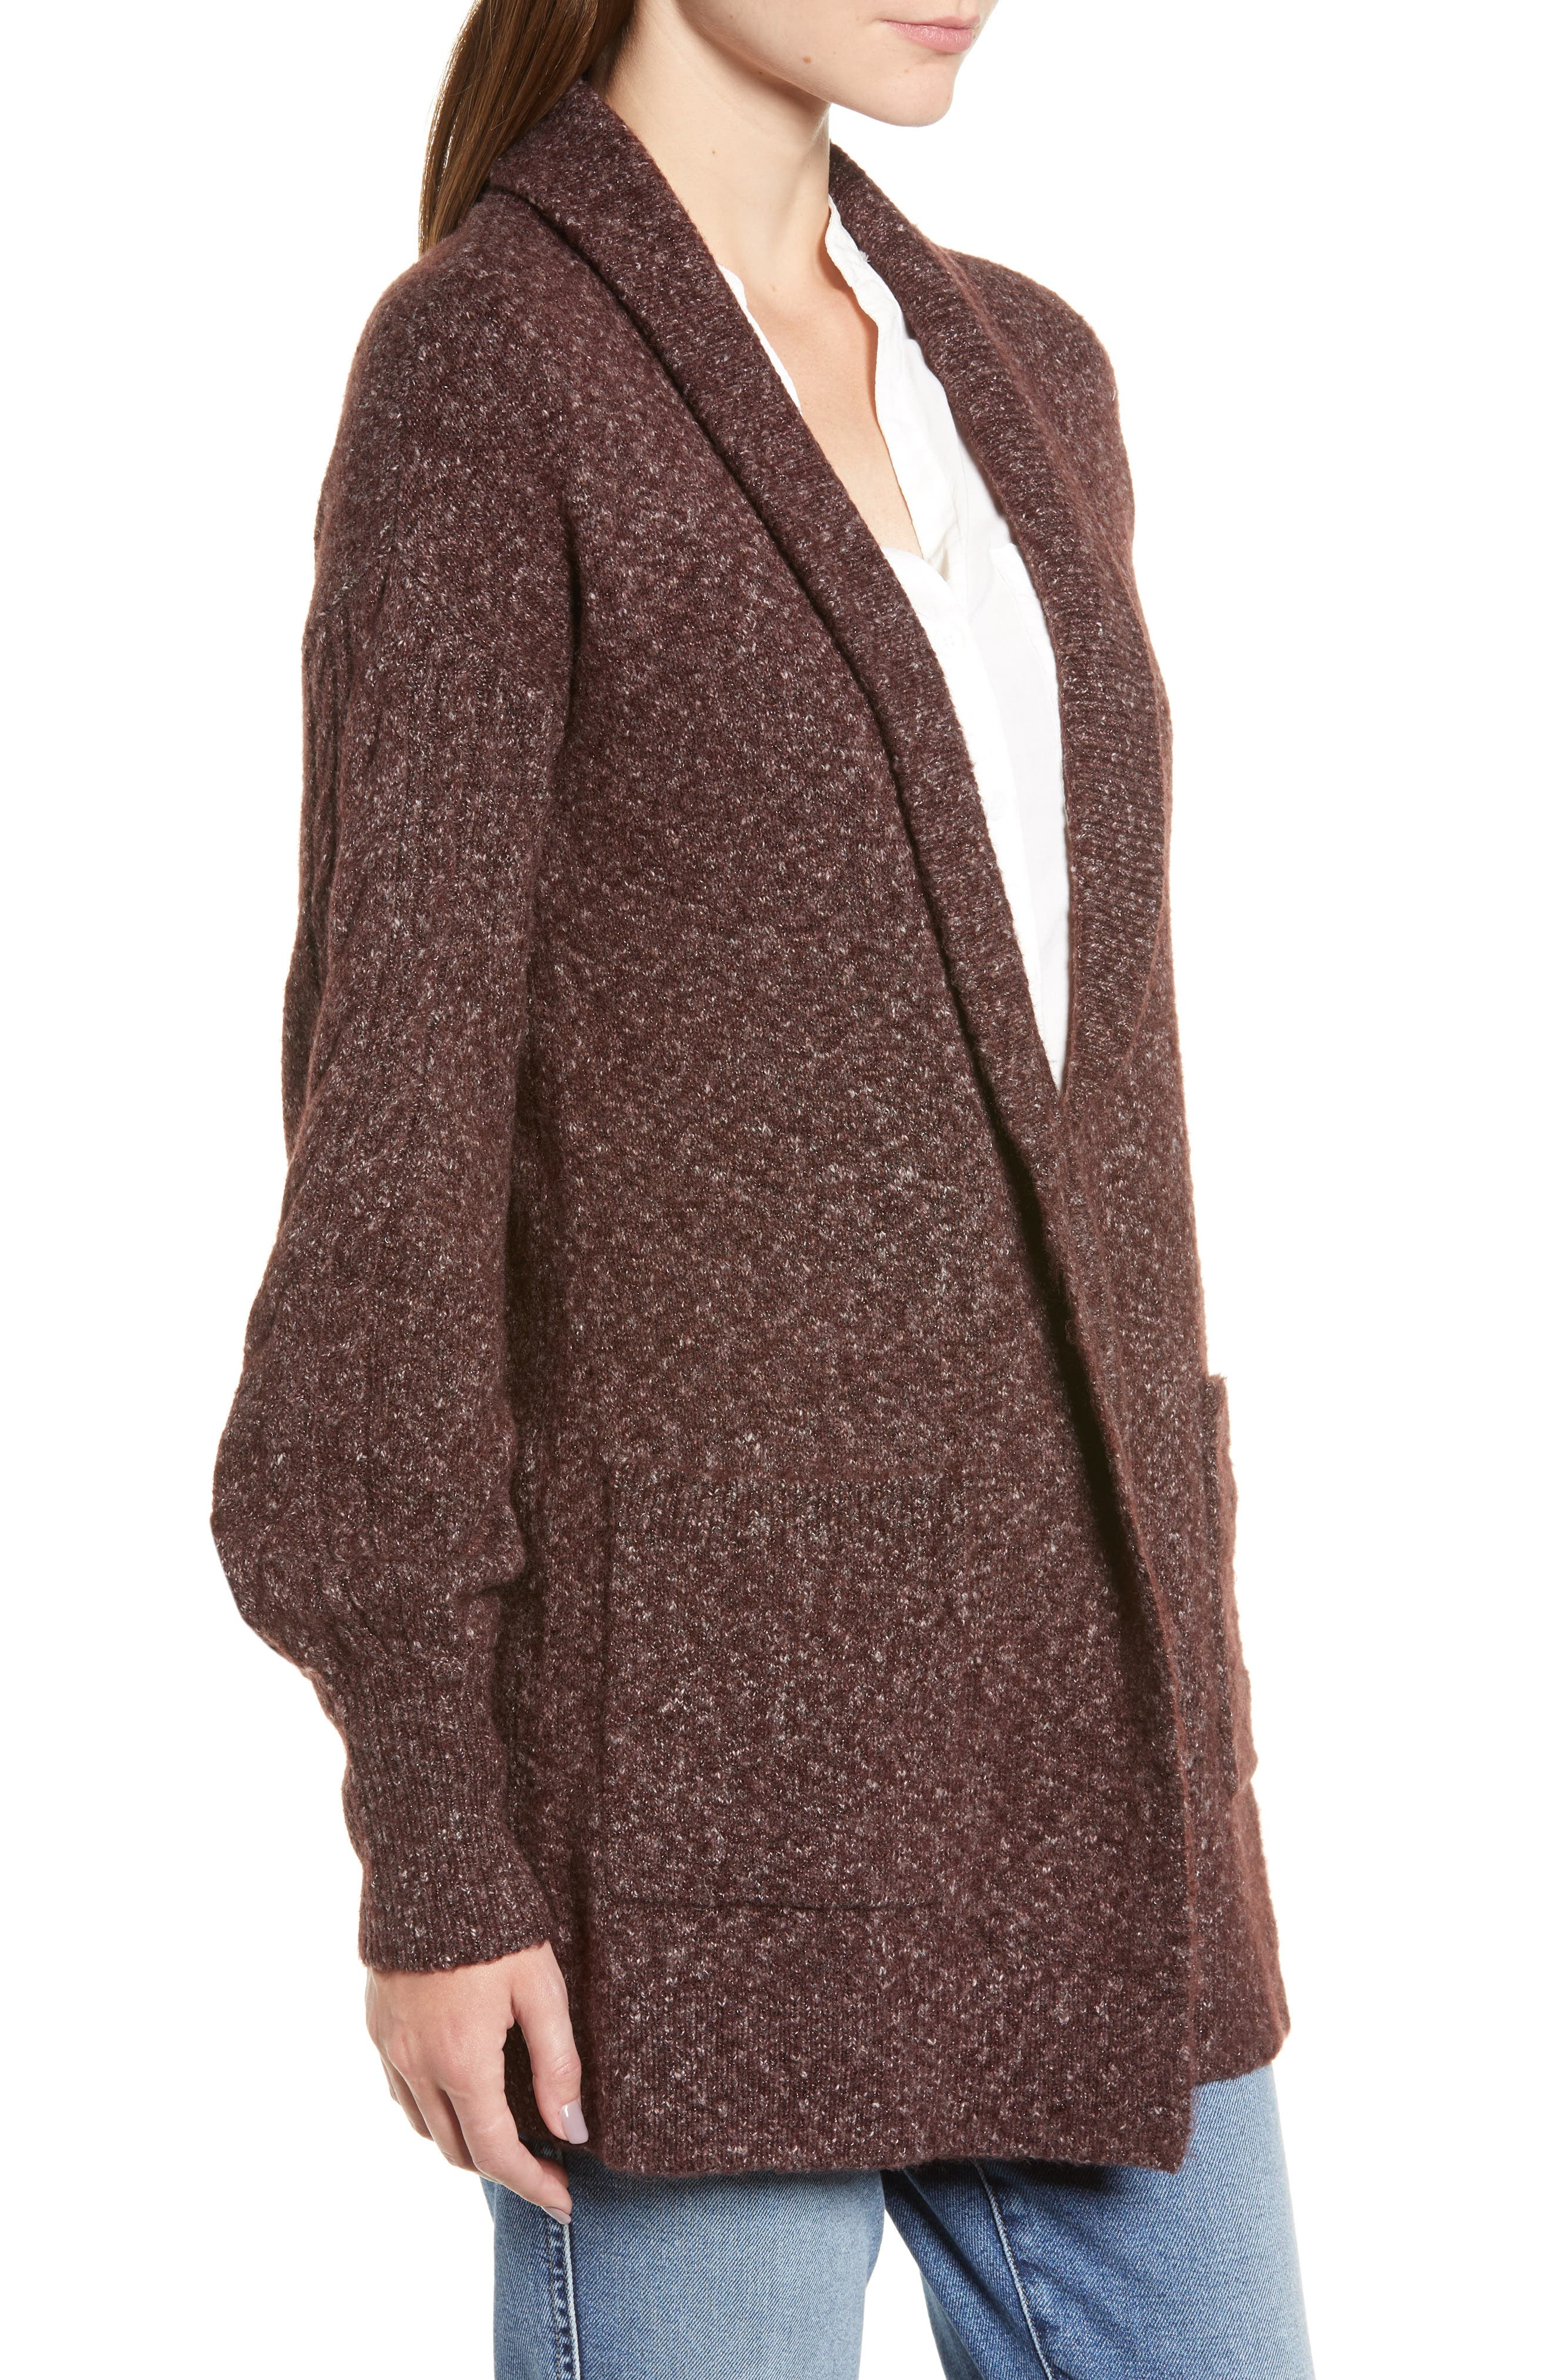 Longline Cardigan,                             Alternate thumbnail 3, color,                             BURGUNDY FUDGE